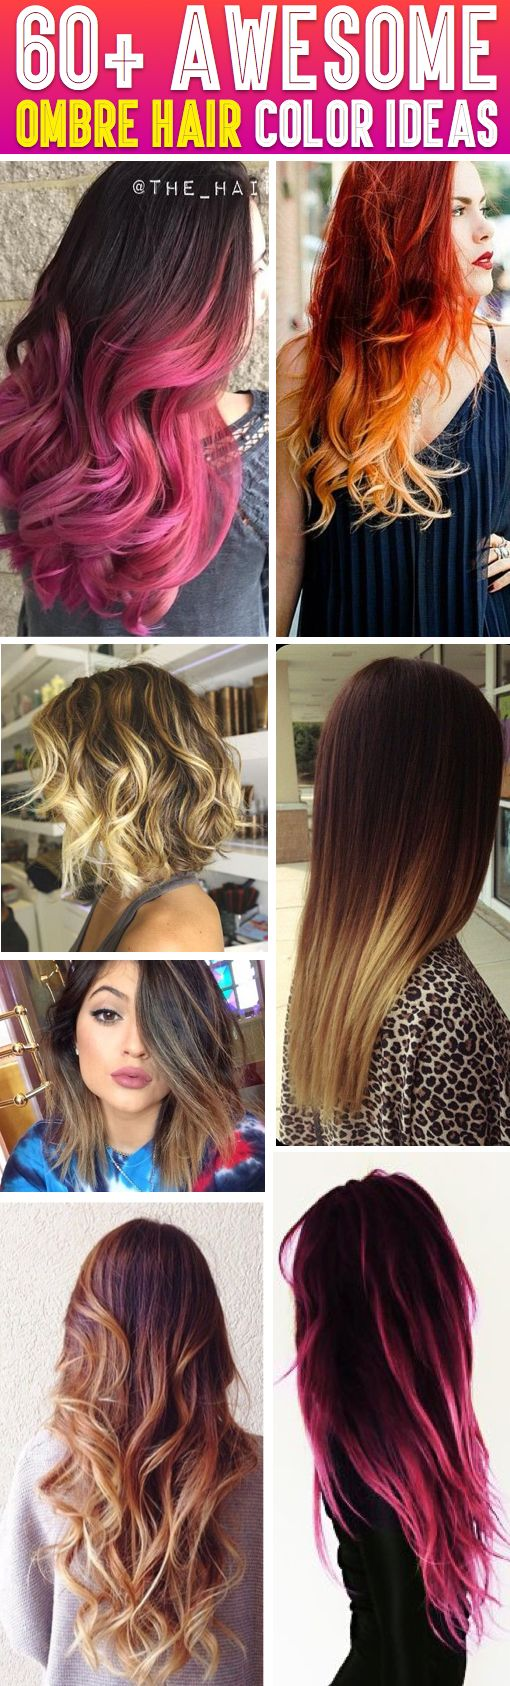 60 Awesome Ombre Hair Color Ideas To Try At Home Faves